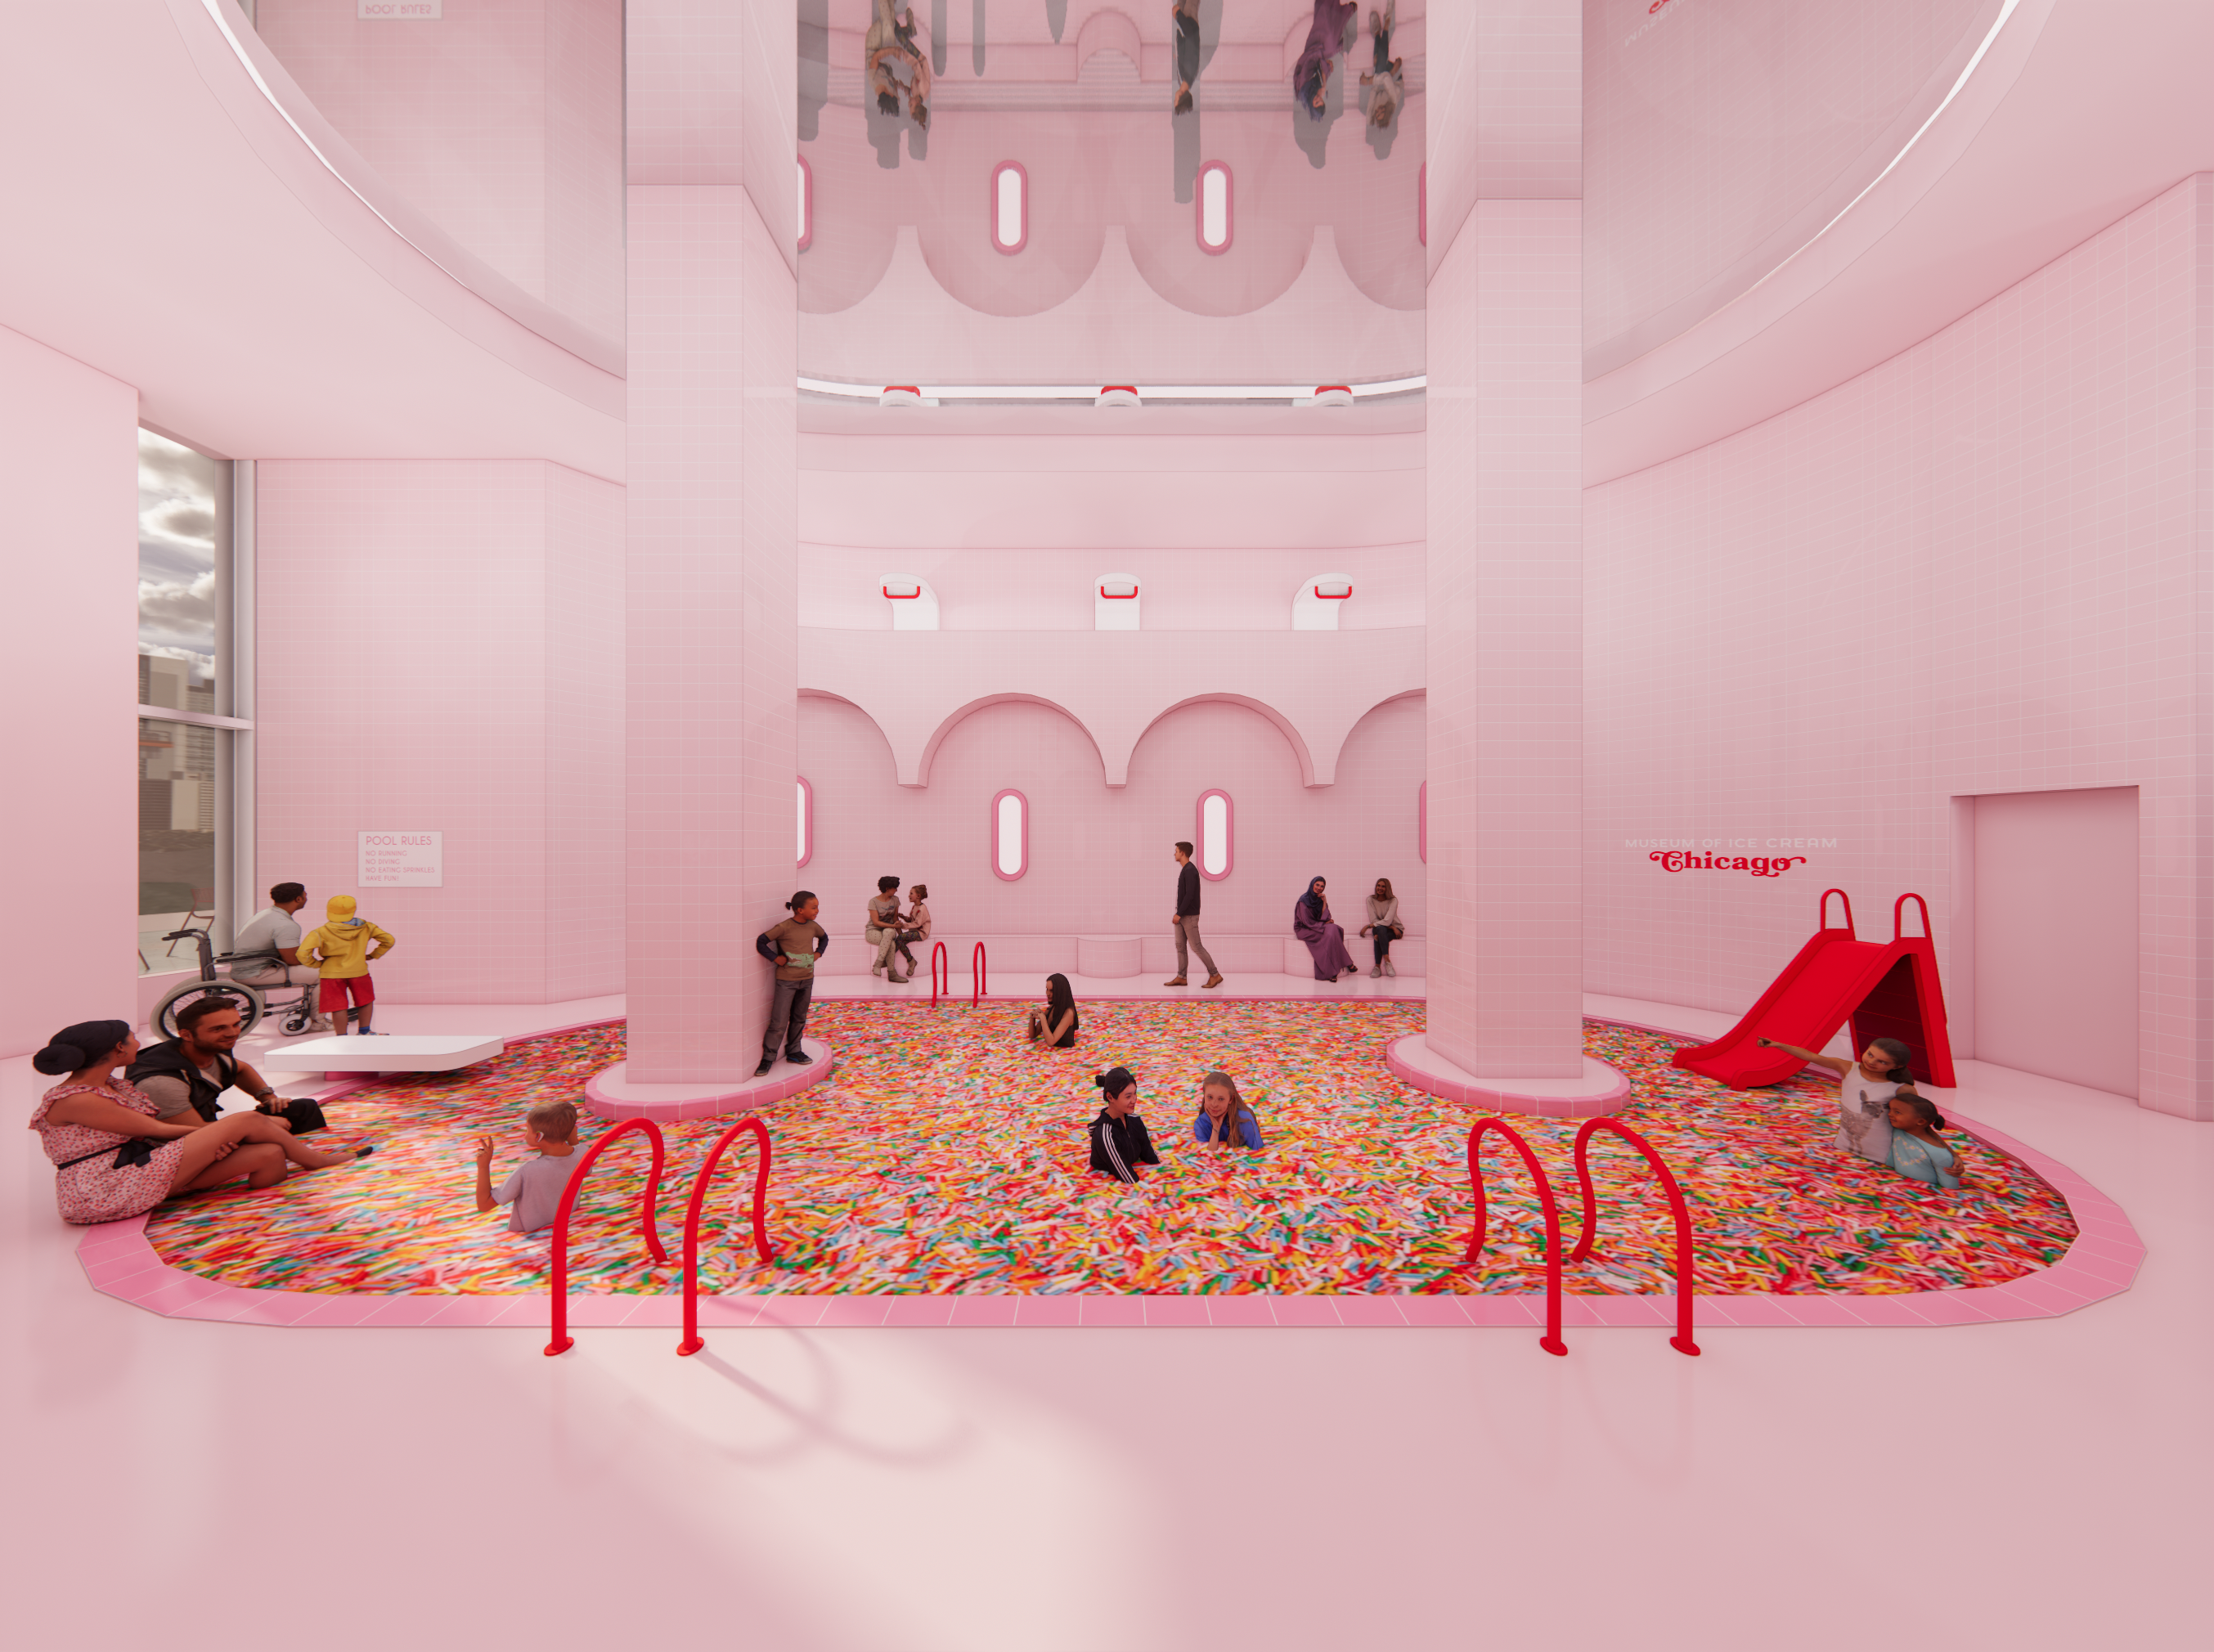 a swimming pool filled with multicolored sprinkles; there is a slide, and people lounge on the side. it is in a pink room.